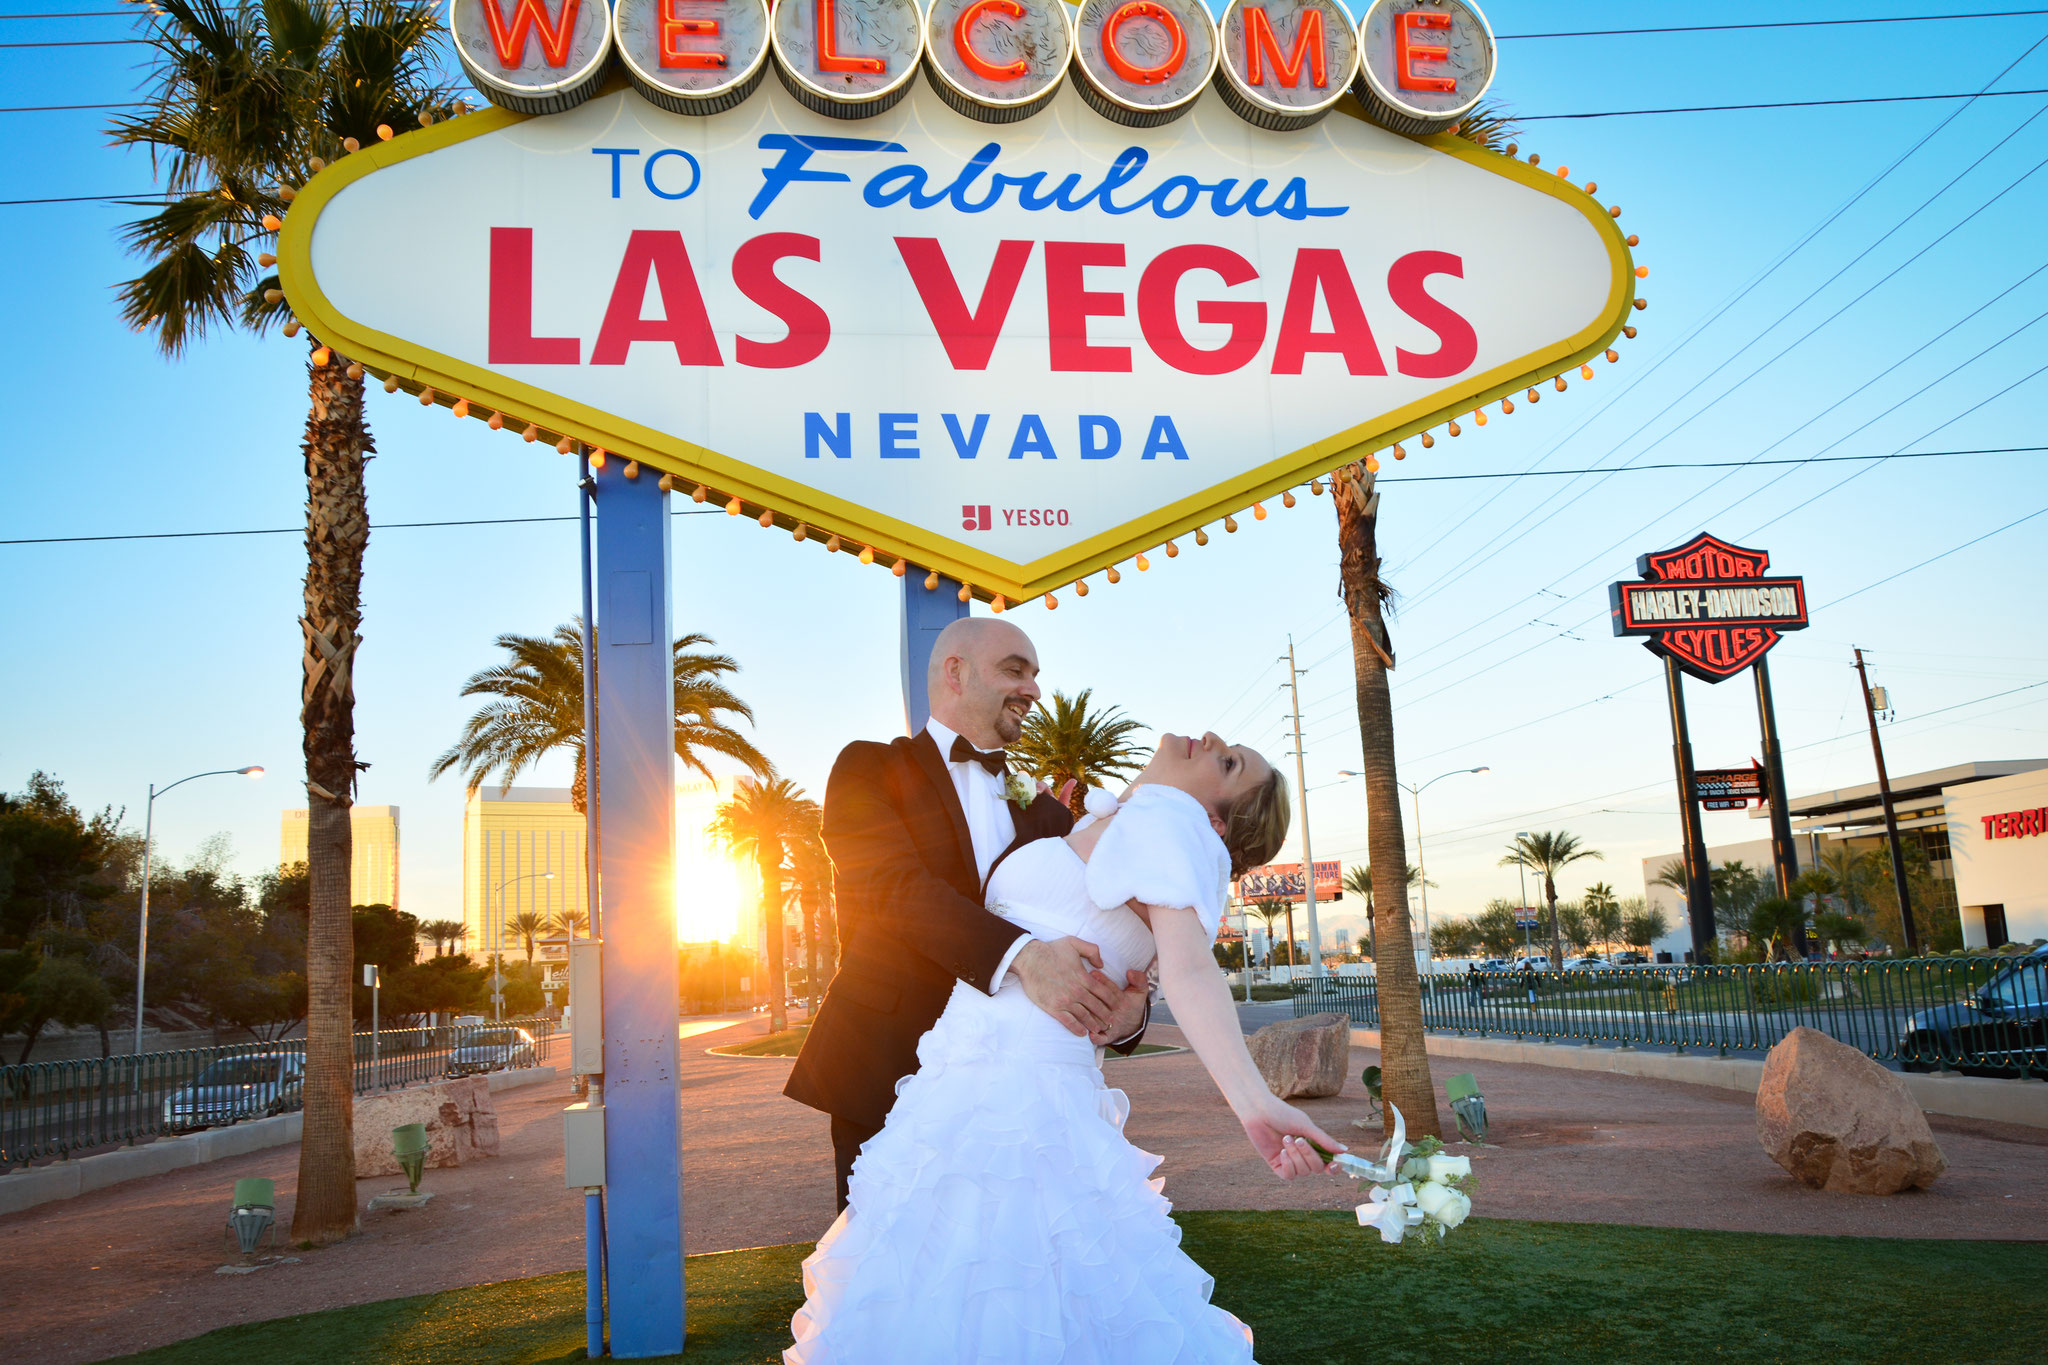 Traut euch am Welcome to Las Vegas Sign